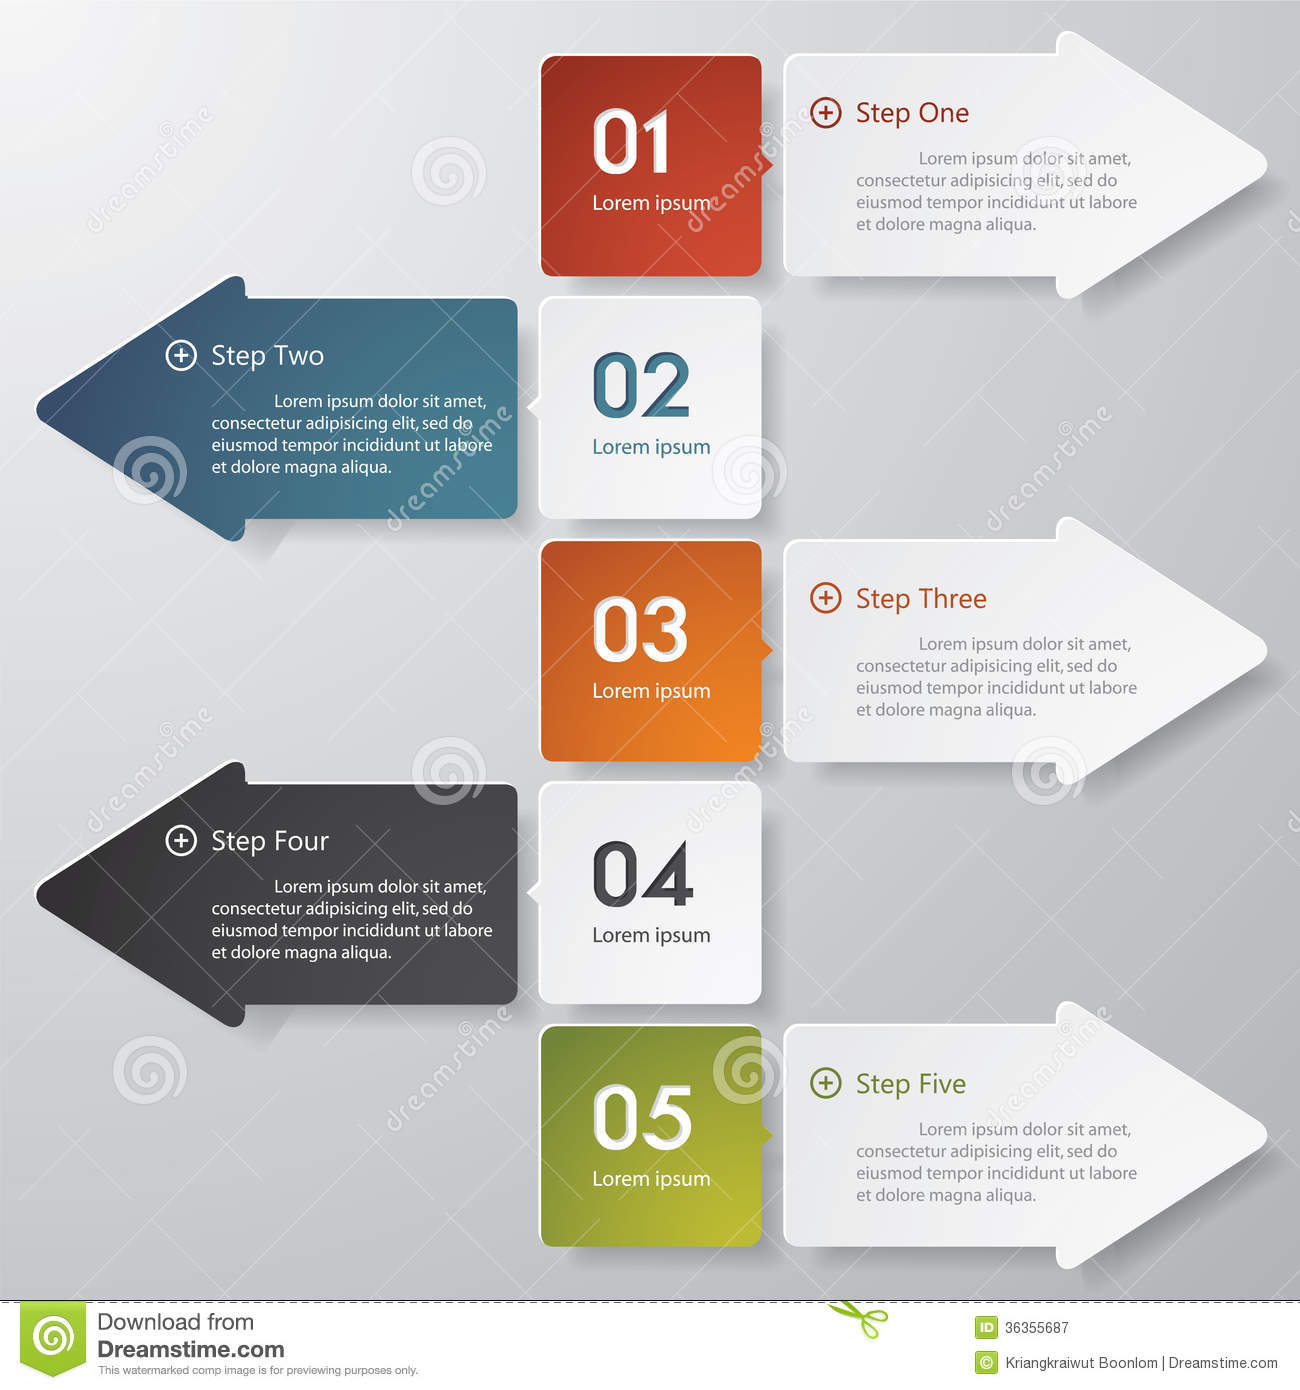 Design clean number banners templategraphic or website layout Vector QJ0GddNJ